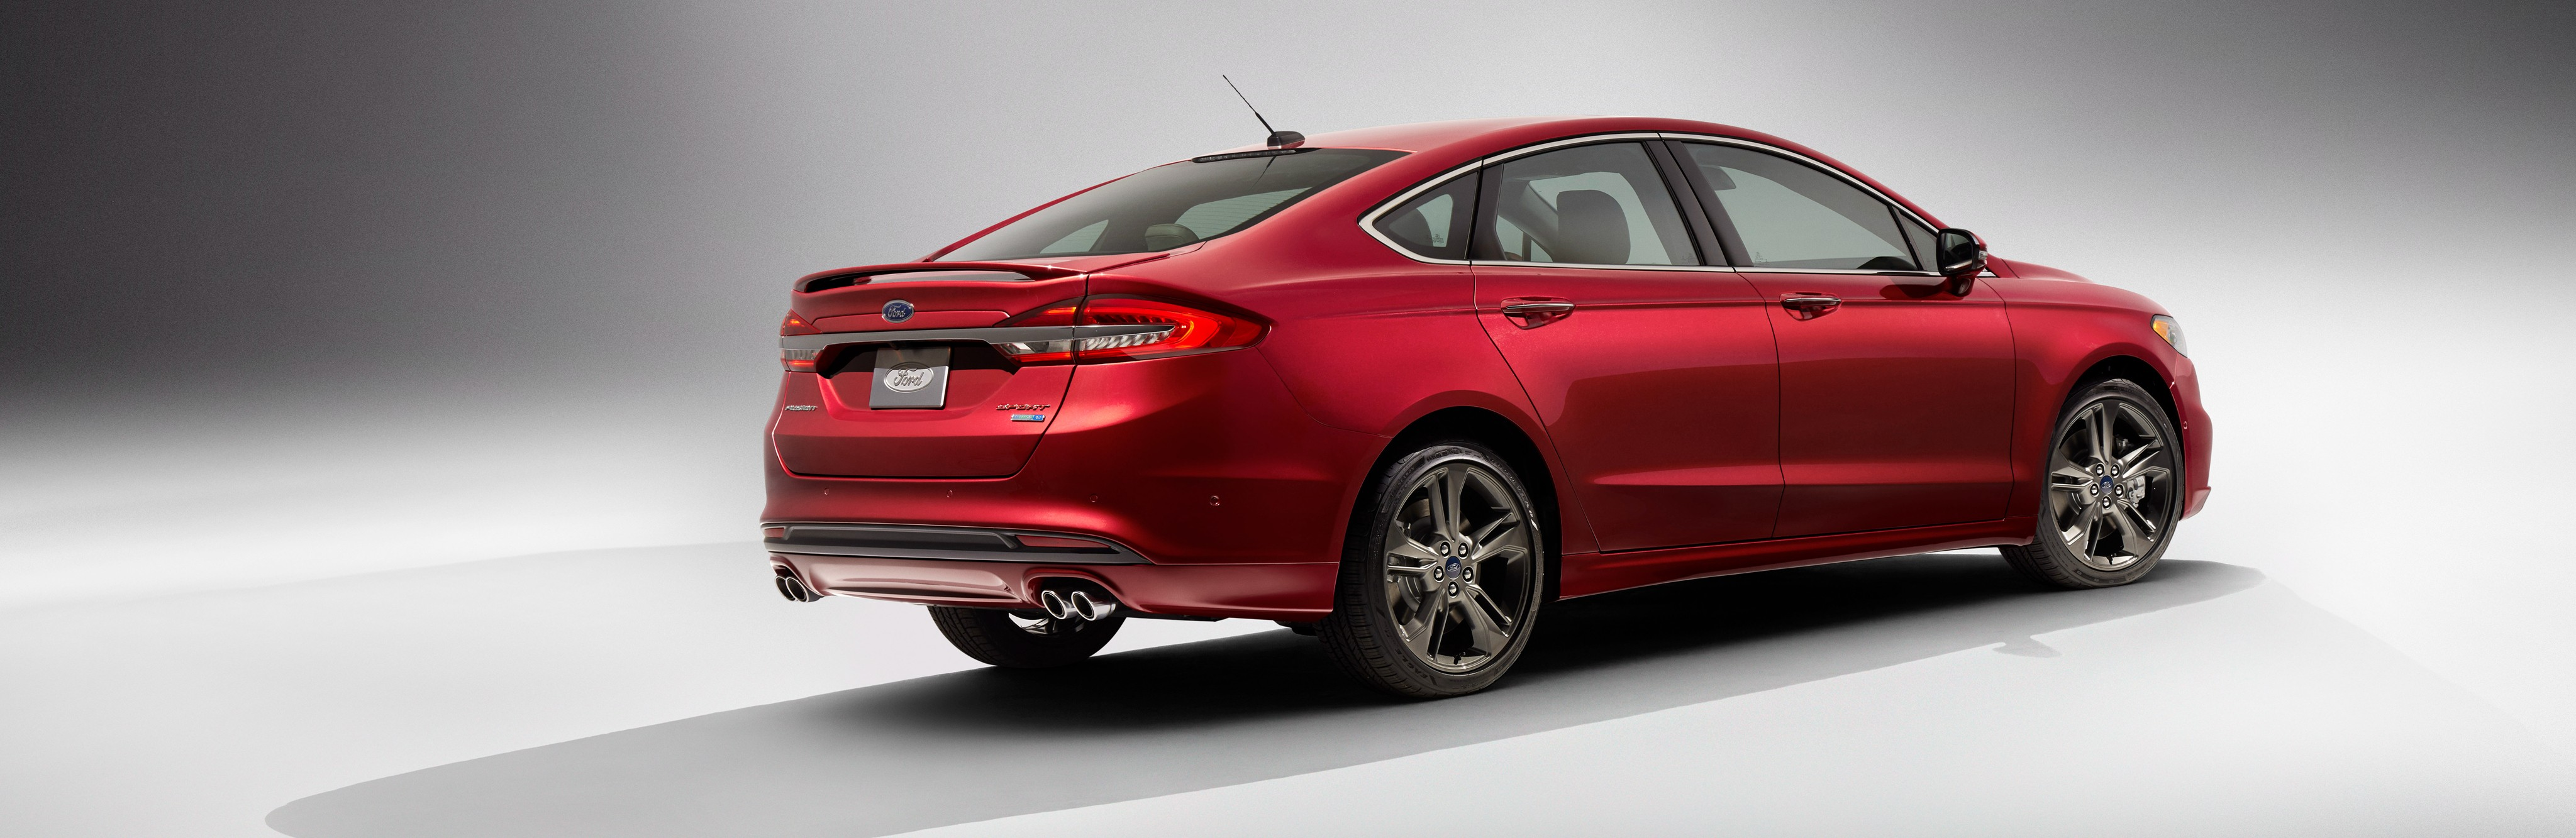 2017 ford fusion sport arrives at dealers in august priced at 34 350 autoevolution. Black Bedroom Furniture Sets. Home Design Ideas